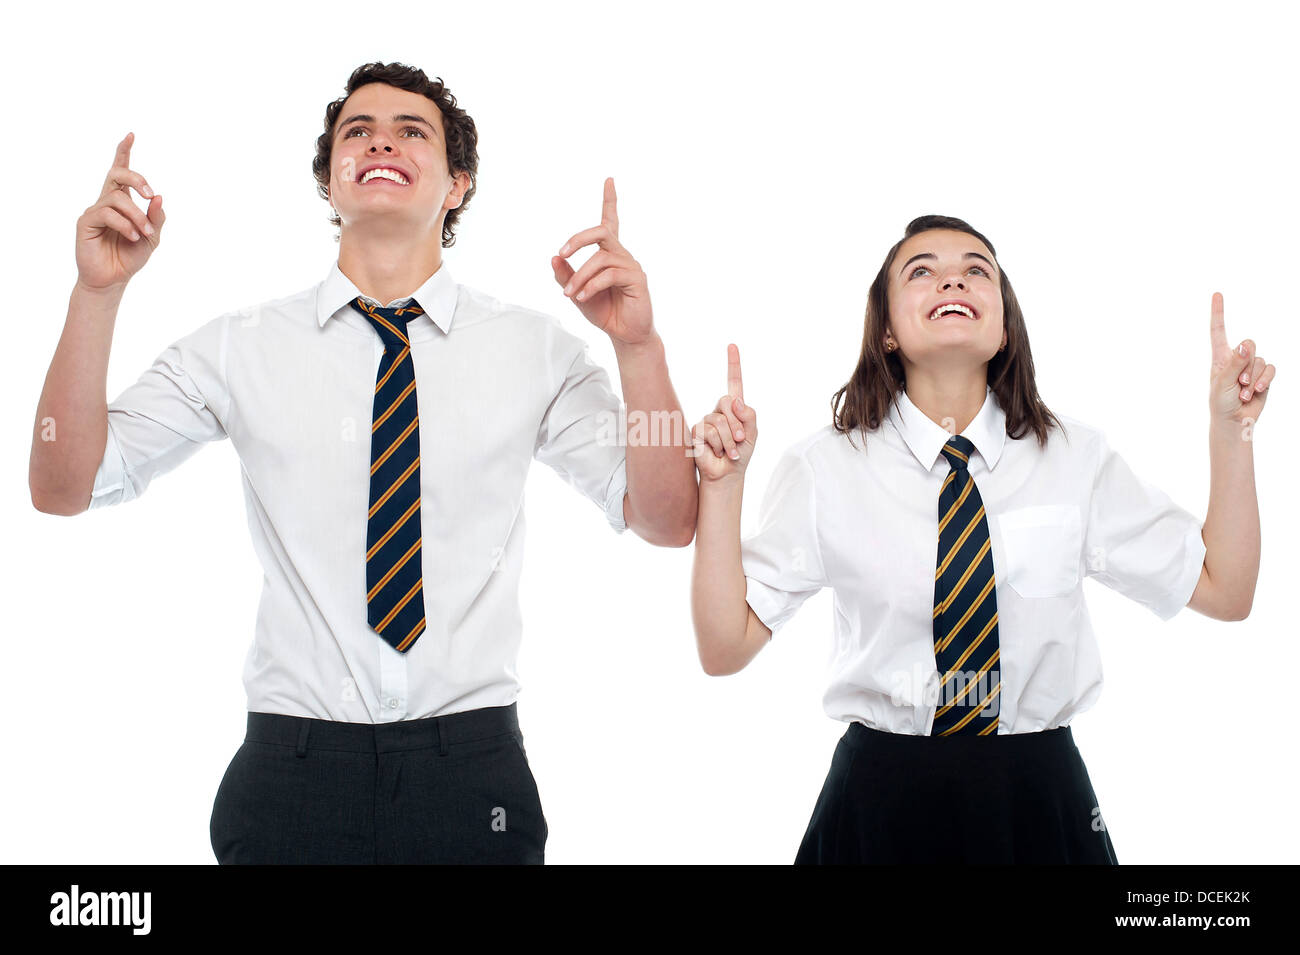 Schoolmates looking and pointing upwards. All on white background - Stock Image